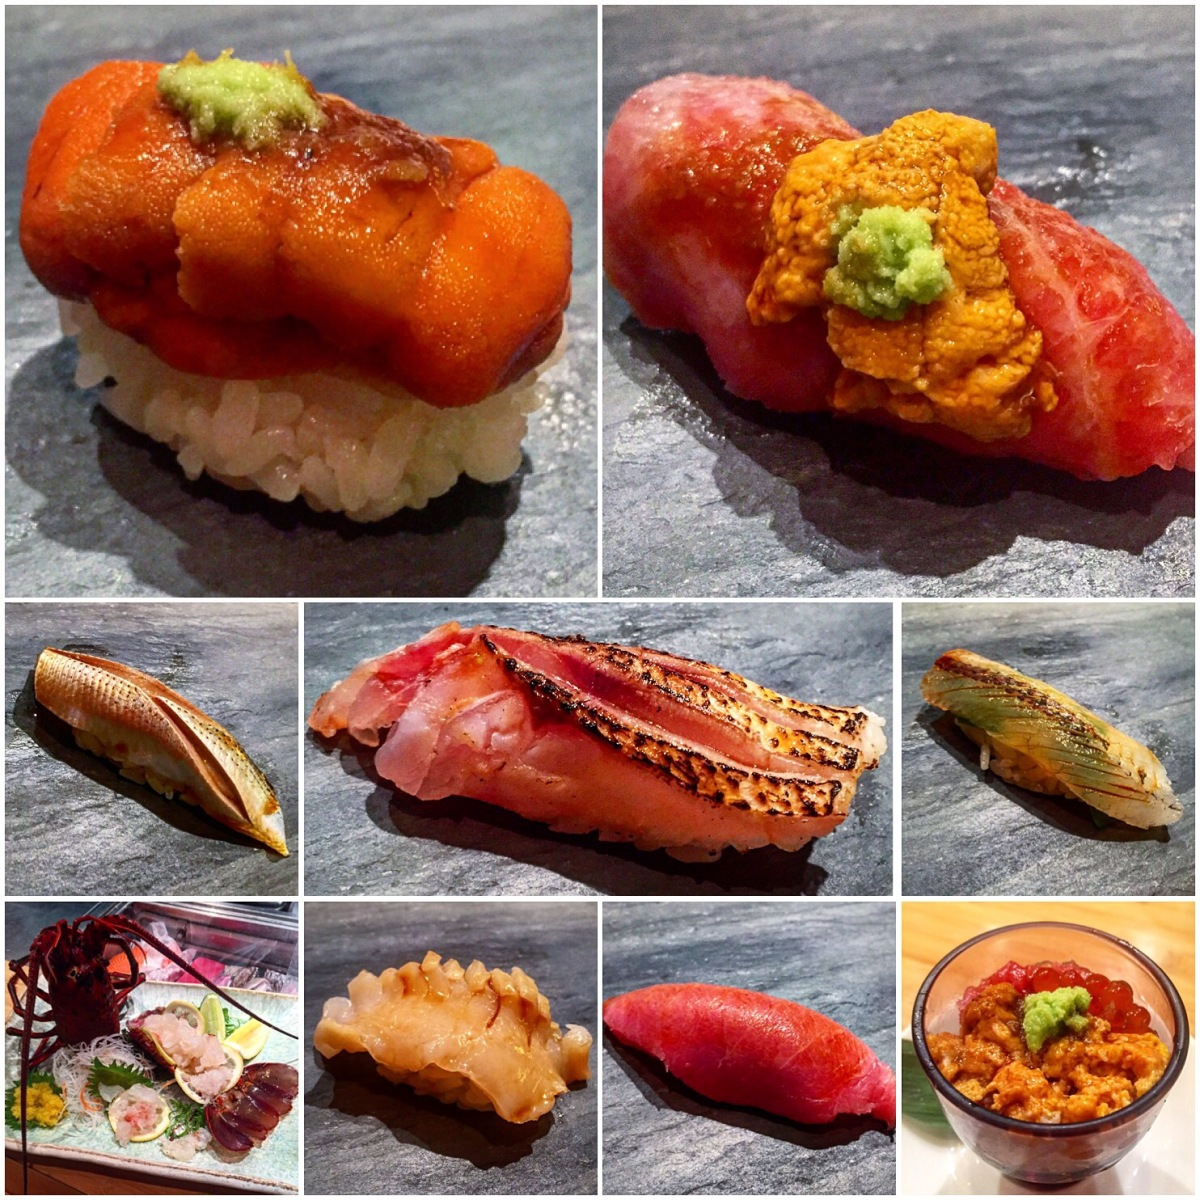 Jewel Bako (NYC): Live Lobster & Uni Galore